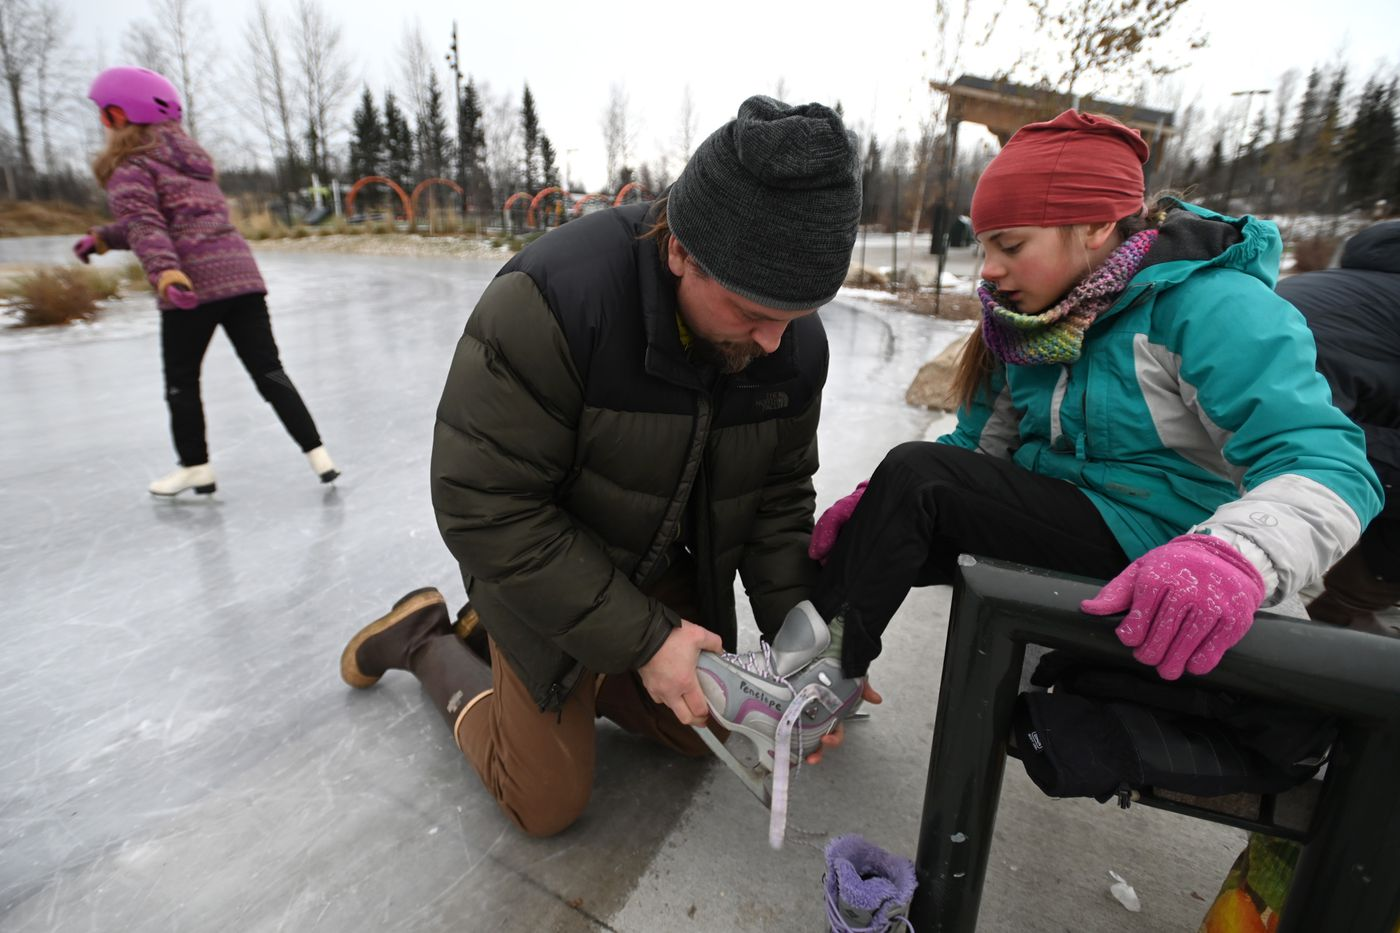 Jeremy Allen helps lace up ice skates for his daughter Penelope, 10, as her sister Isla, 8, skates on the freshly hot mopped ice surface at Chanshtnu Muldoon Park on Thursday, Nov. 5, 2020. (Bill Roth / ADN)